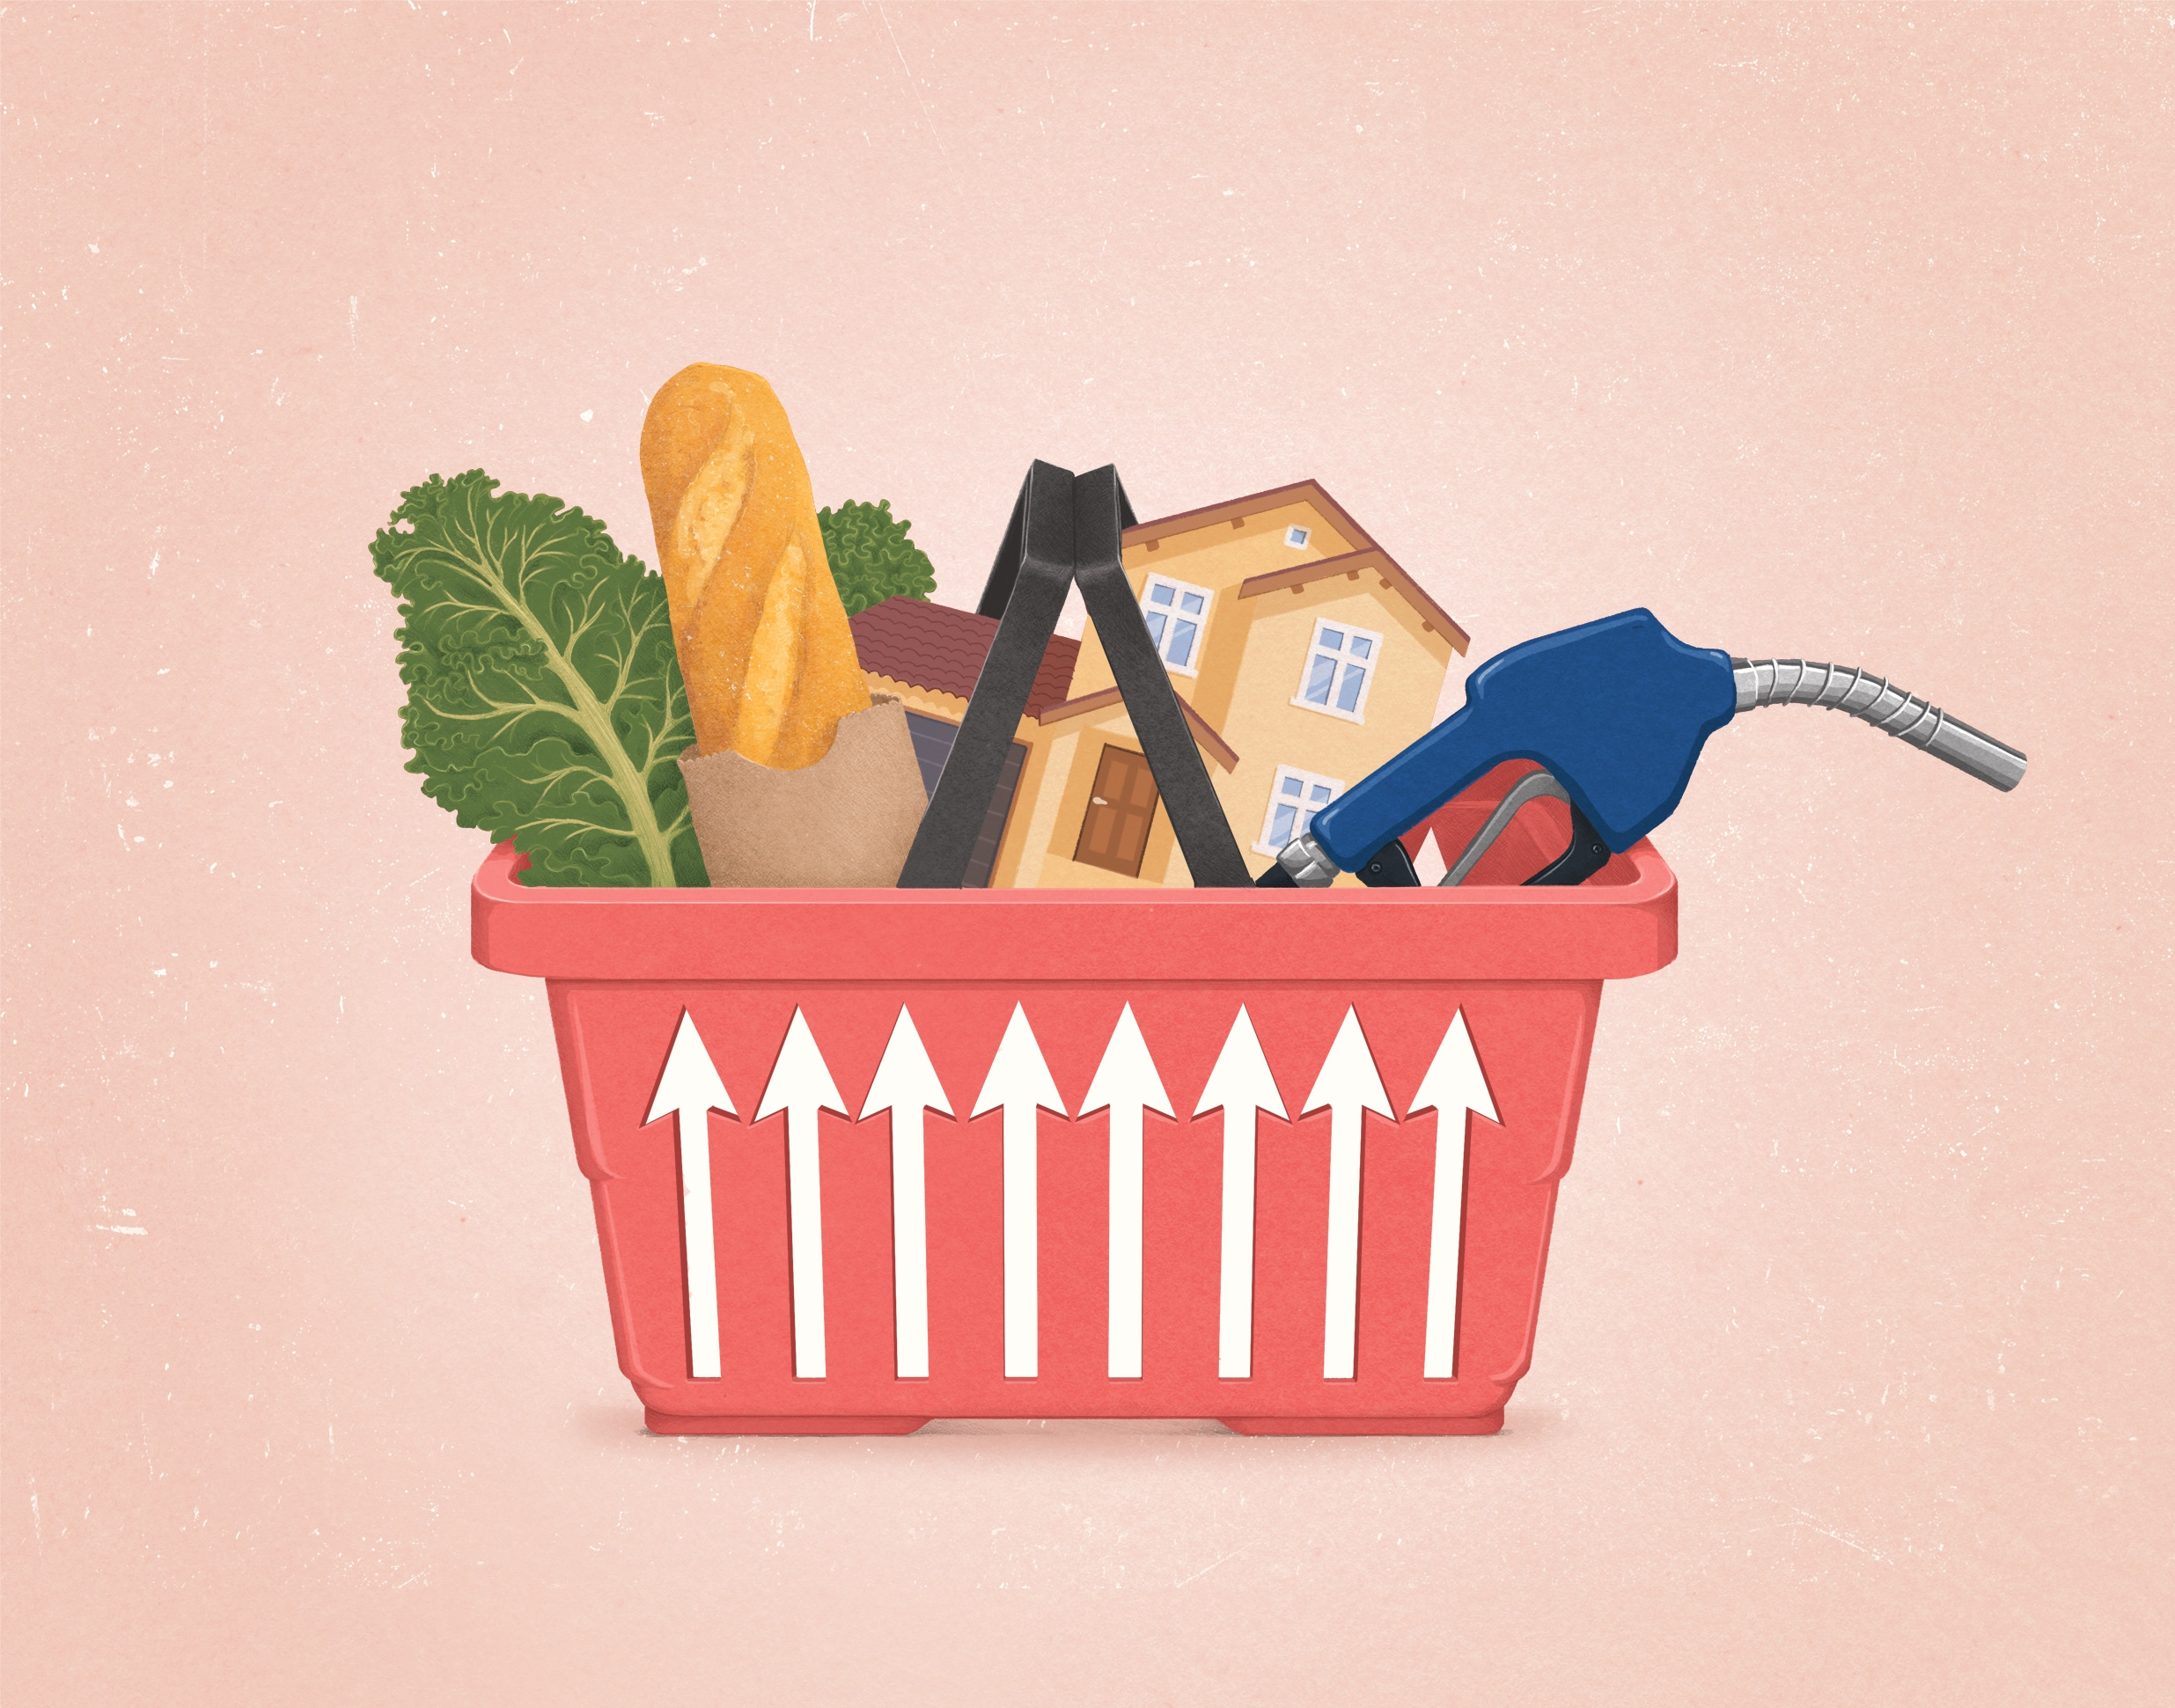 Illustration of a shopping basket filled with bread, kale, a gas pump nozzle, and a house. The grating on the sides of the basket are shaped like up arrows.